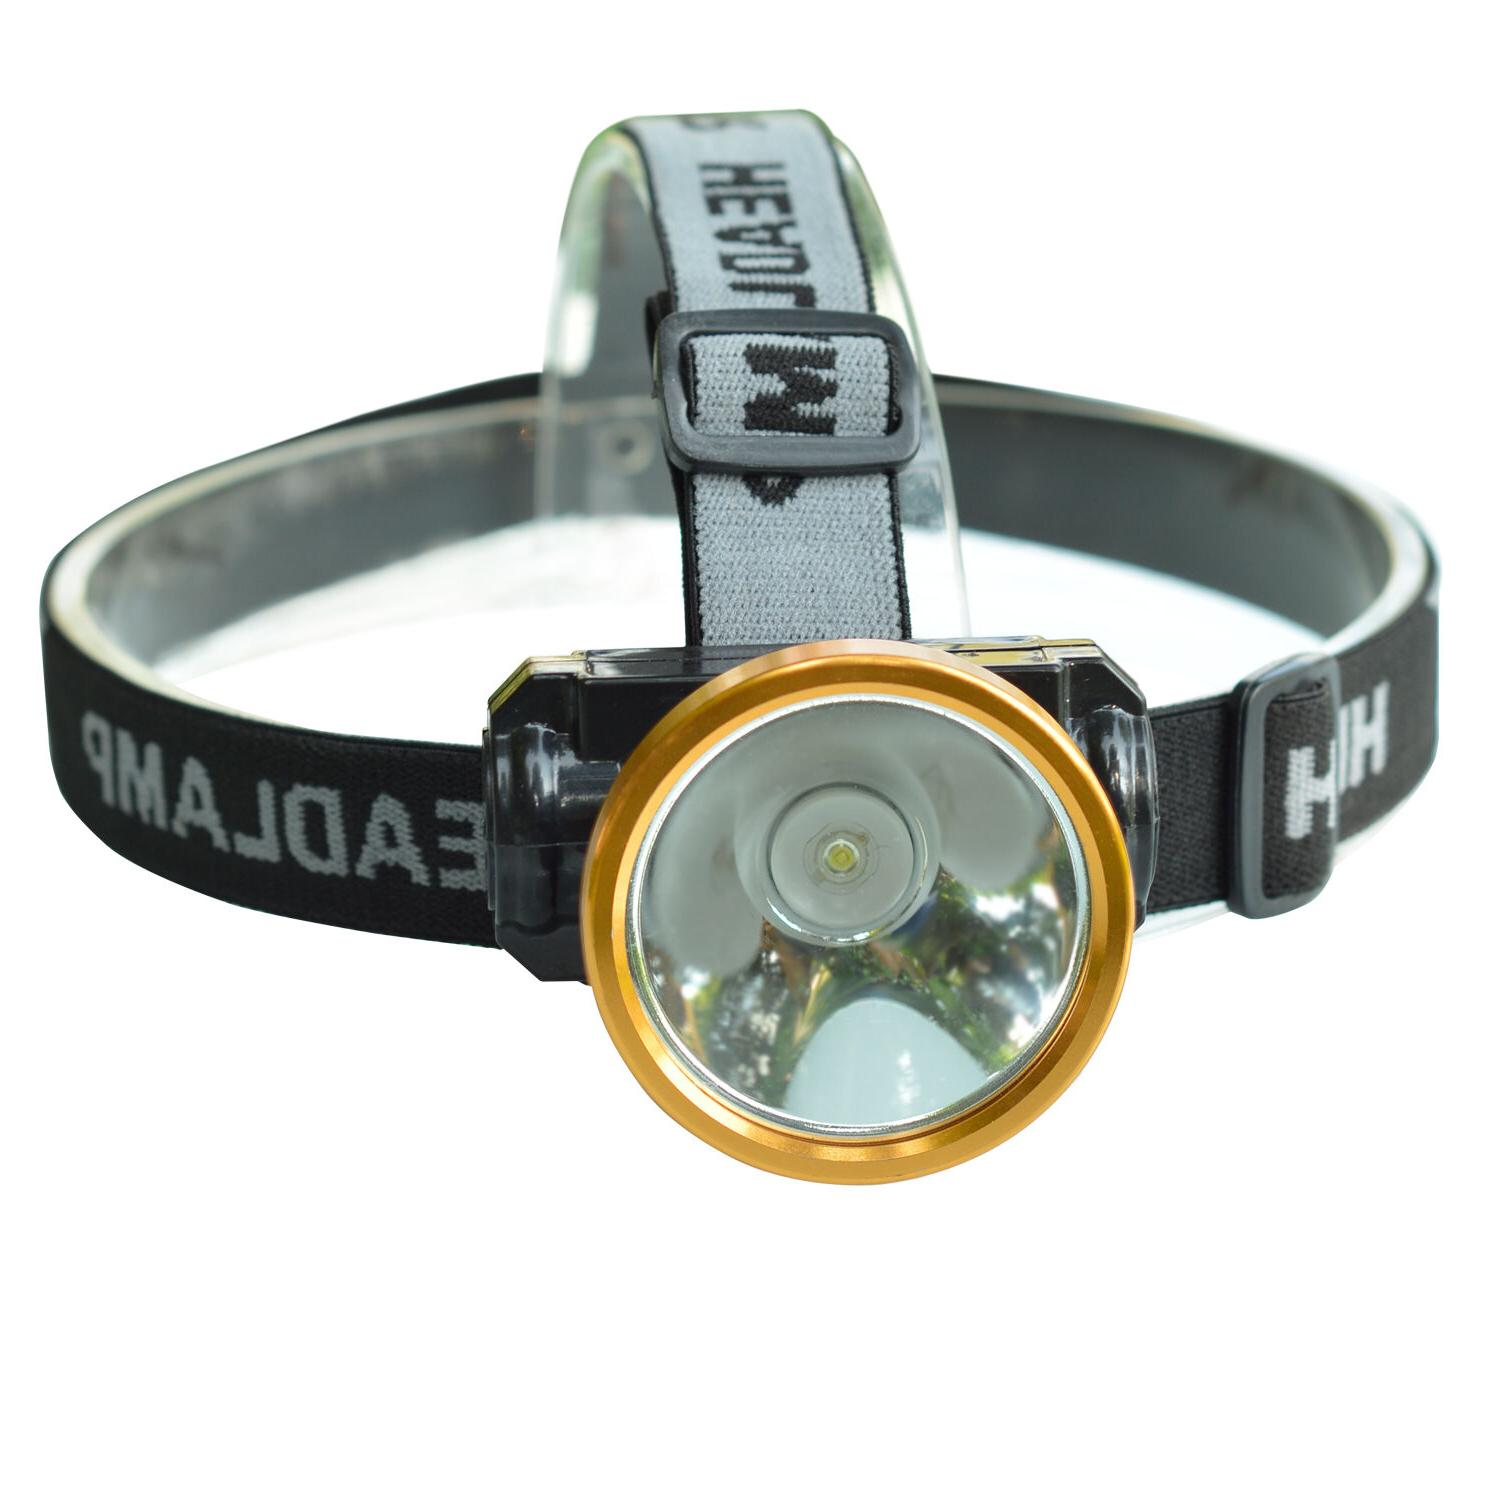 Odear Head LED Rechargeable Flashlight for Camping